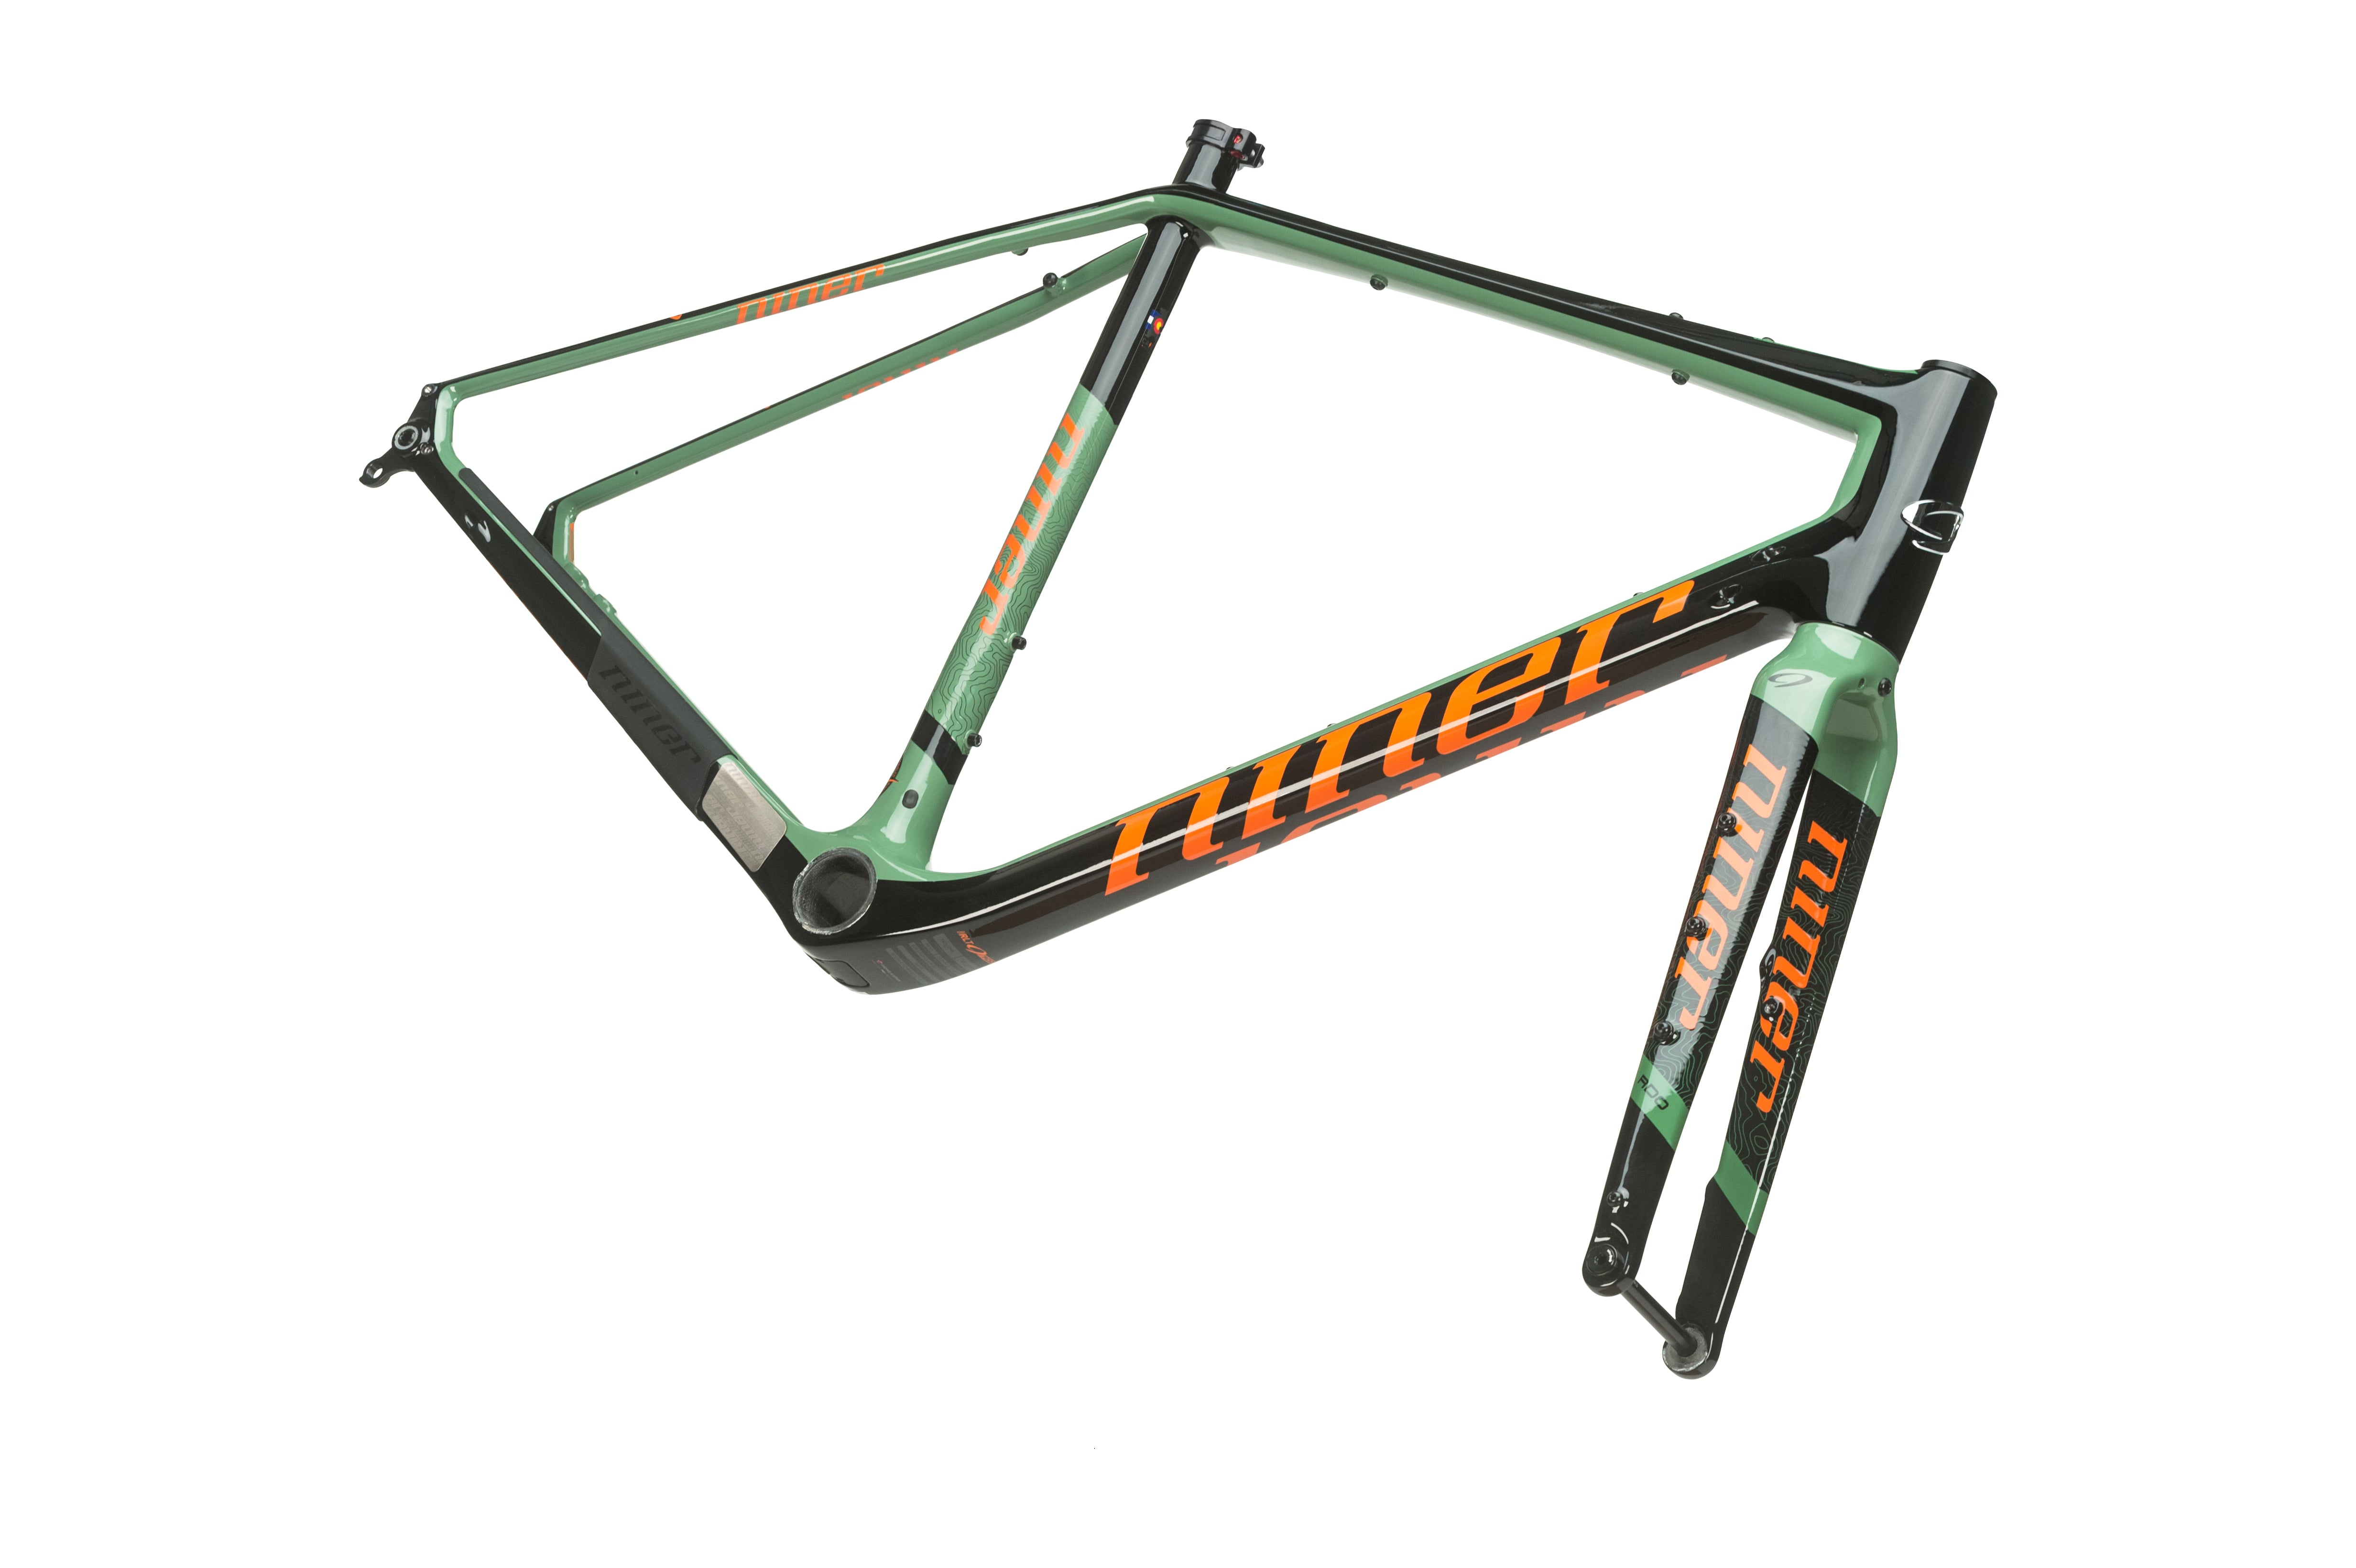 Frame of the RLT 9 RDO gravel bike